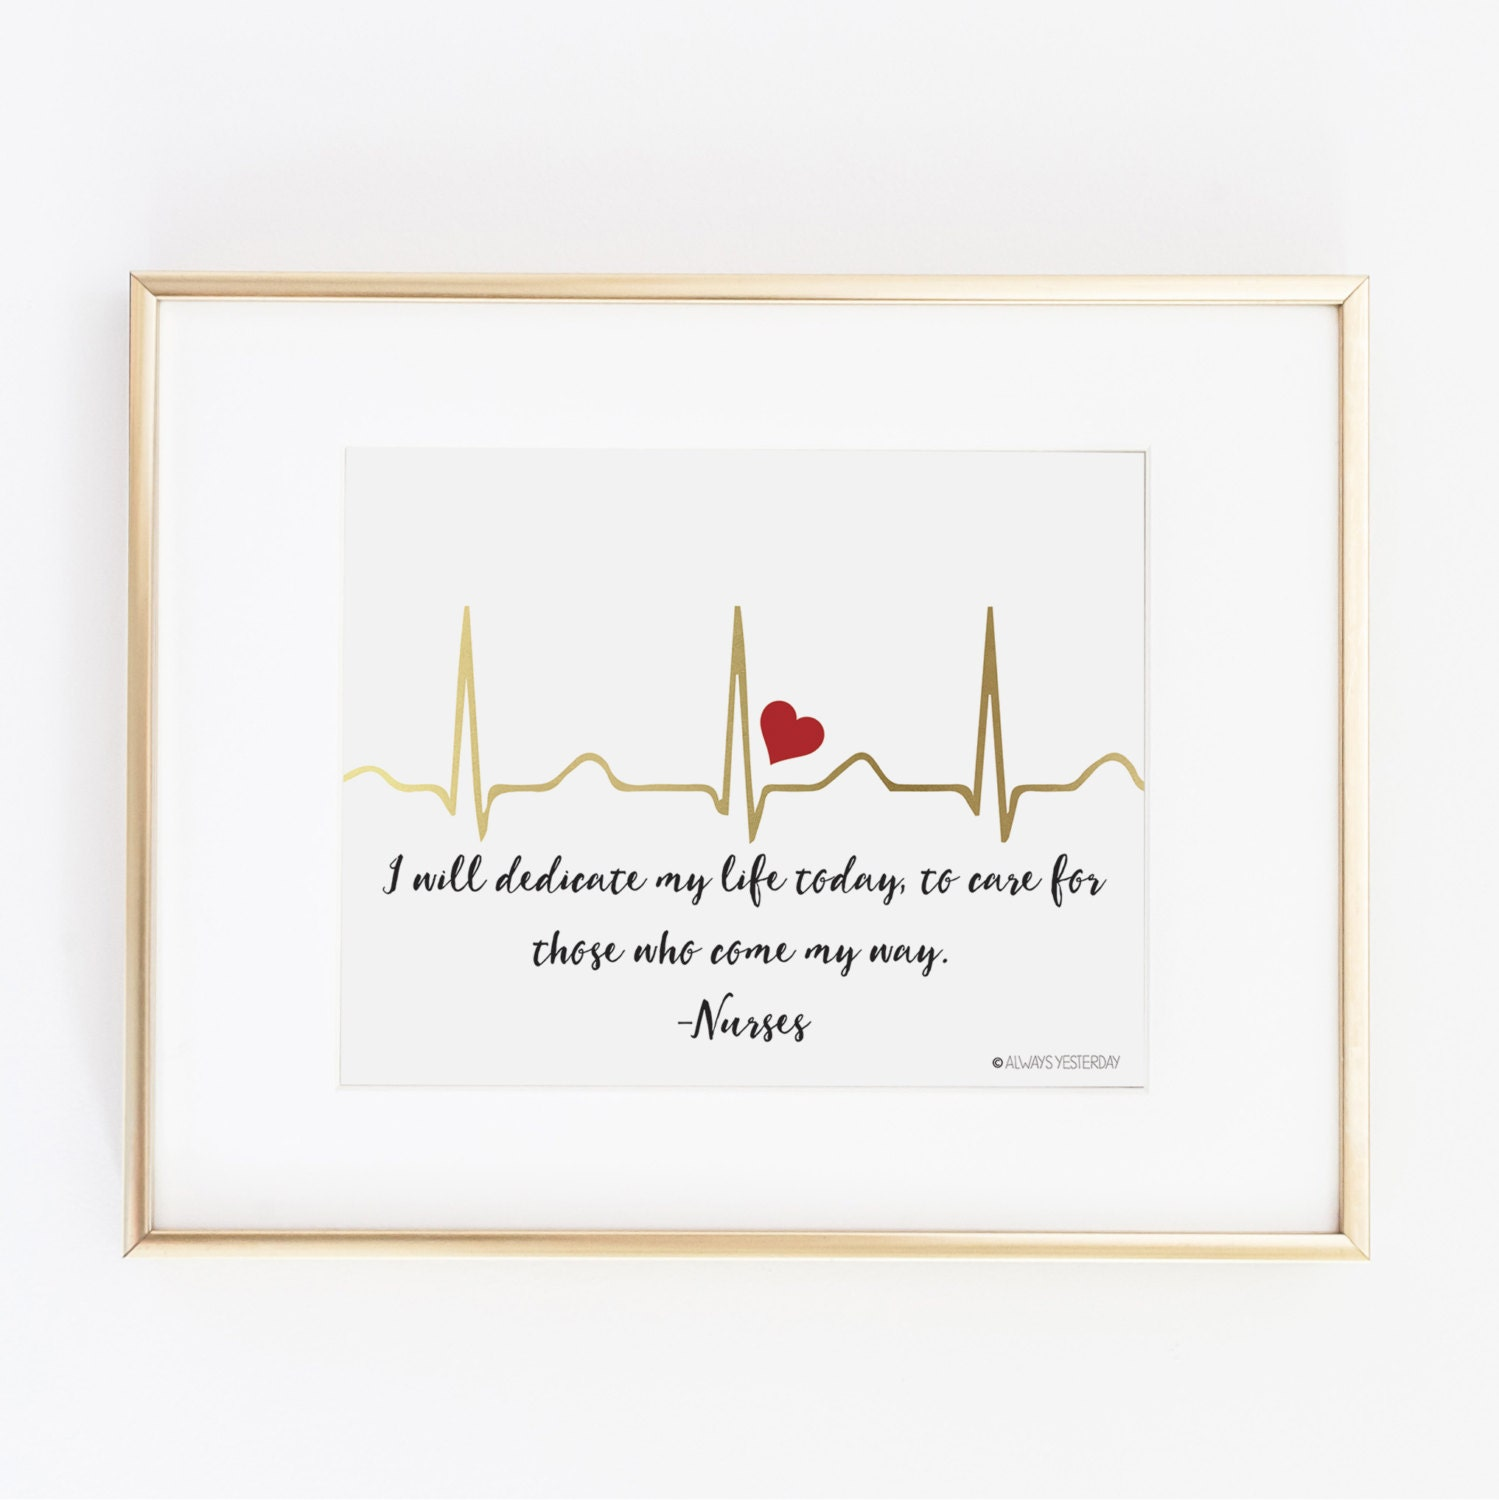 Ekg i will dedicate my life today 8x10 nurse wall art - Graduation gift for interior design student ...